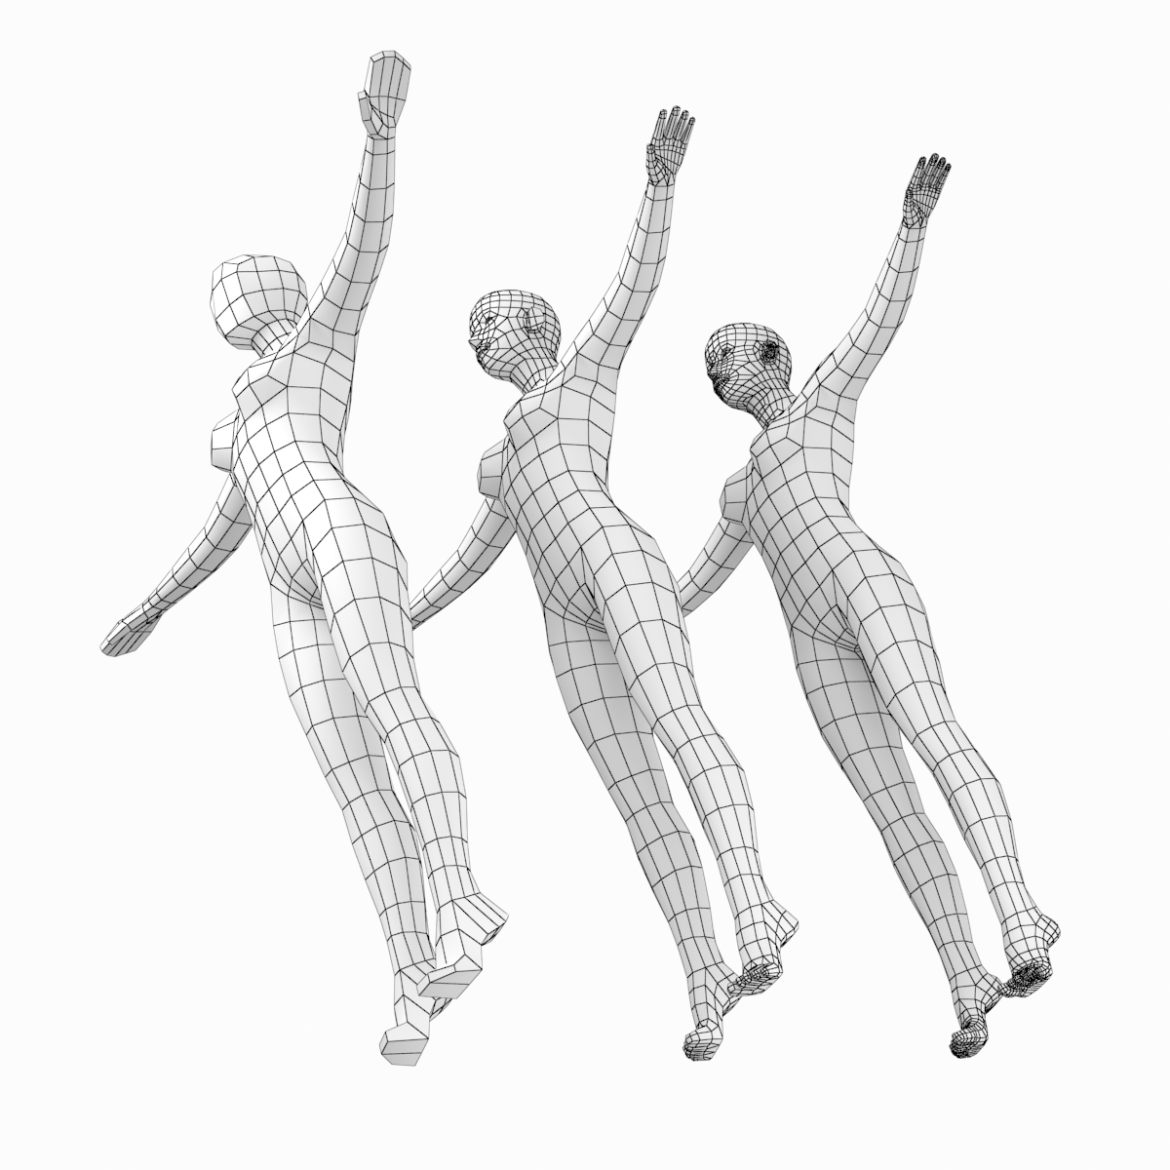 female body on toes base mesh in t-pose 3d model txt 3ds c4d dae dwg dxf fbx max ma mb obj stl png 305203